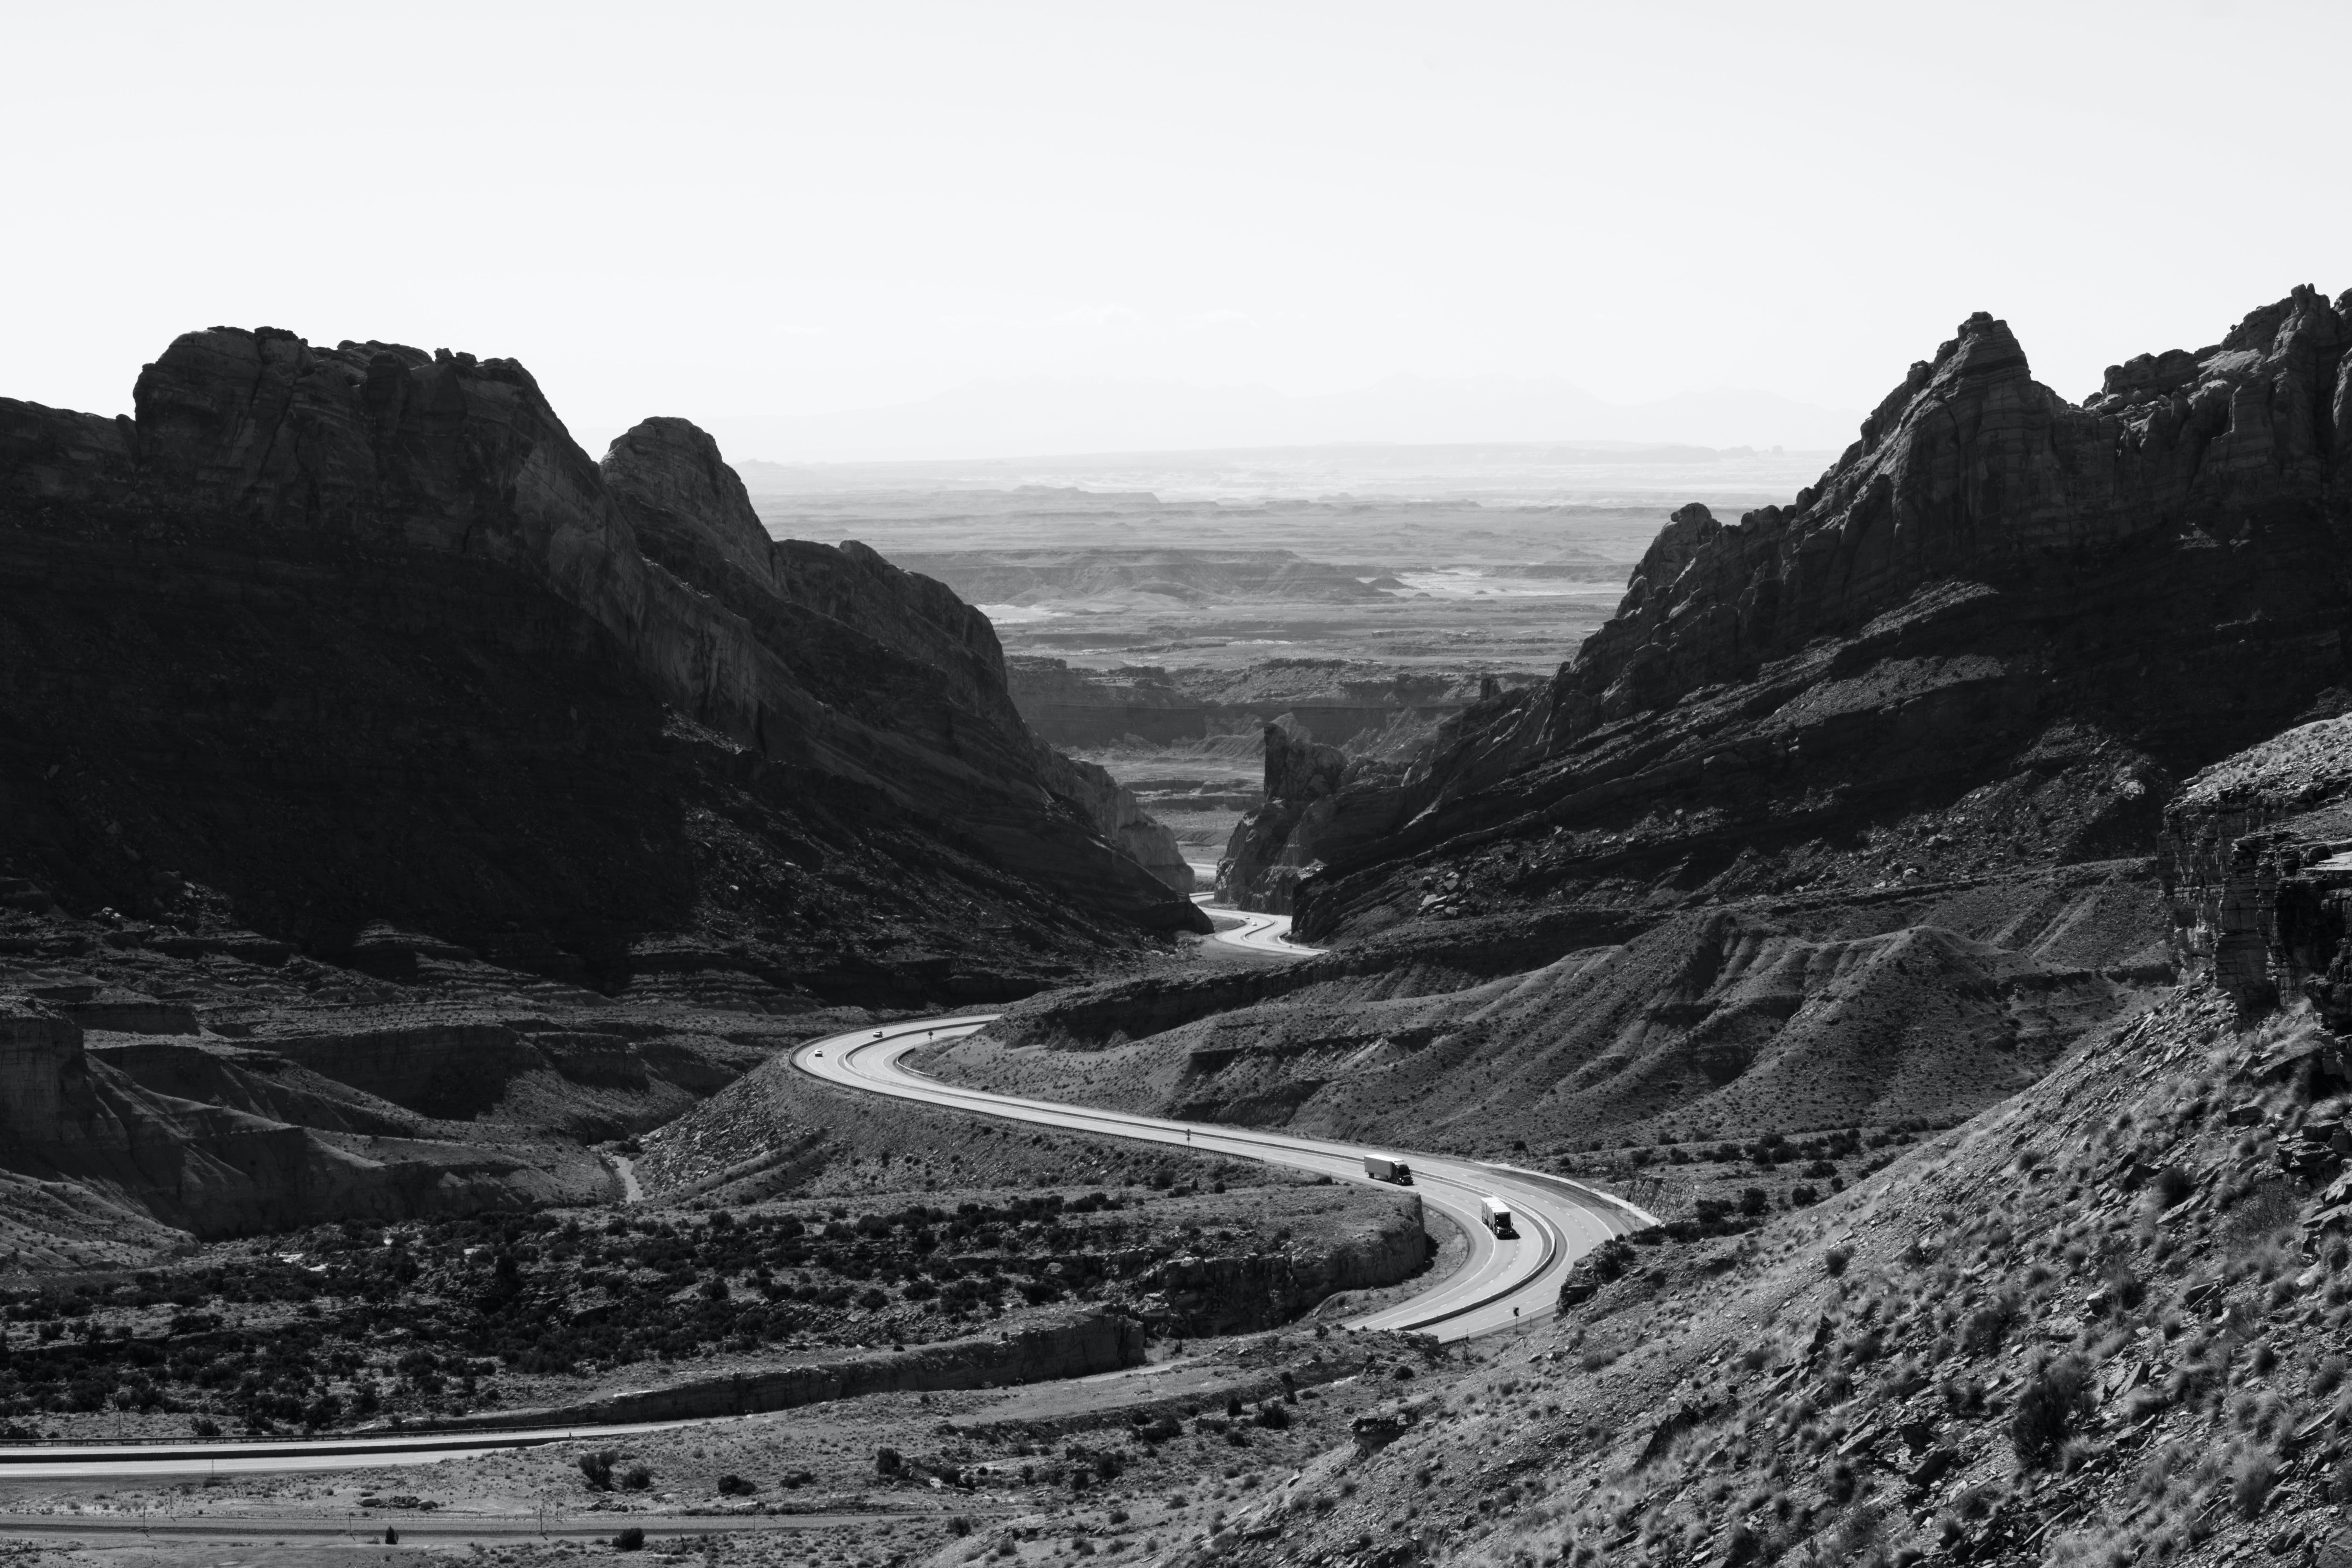 Grayscale Photo of Roadway Surrounded With Rocky Mountains